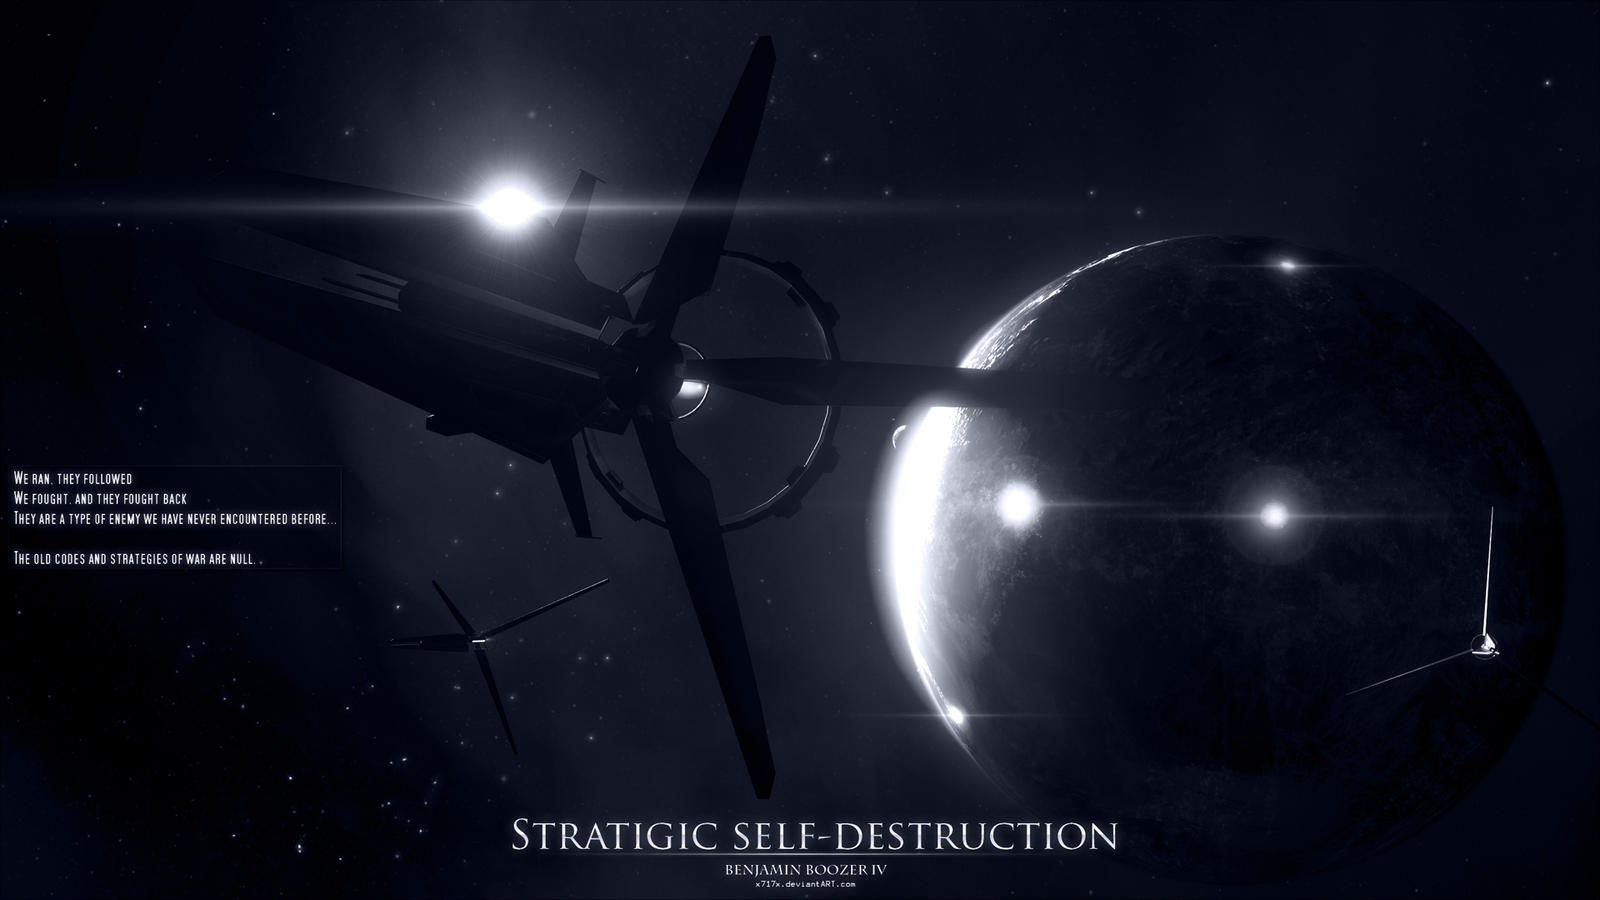 Strategic Self-Destruction by x717x